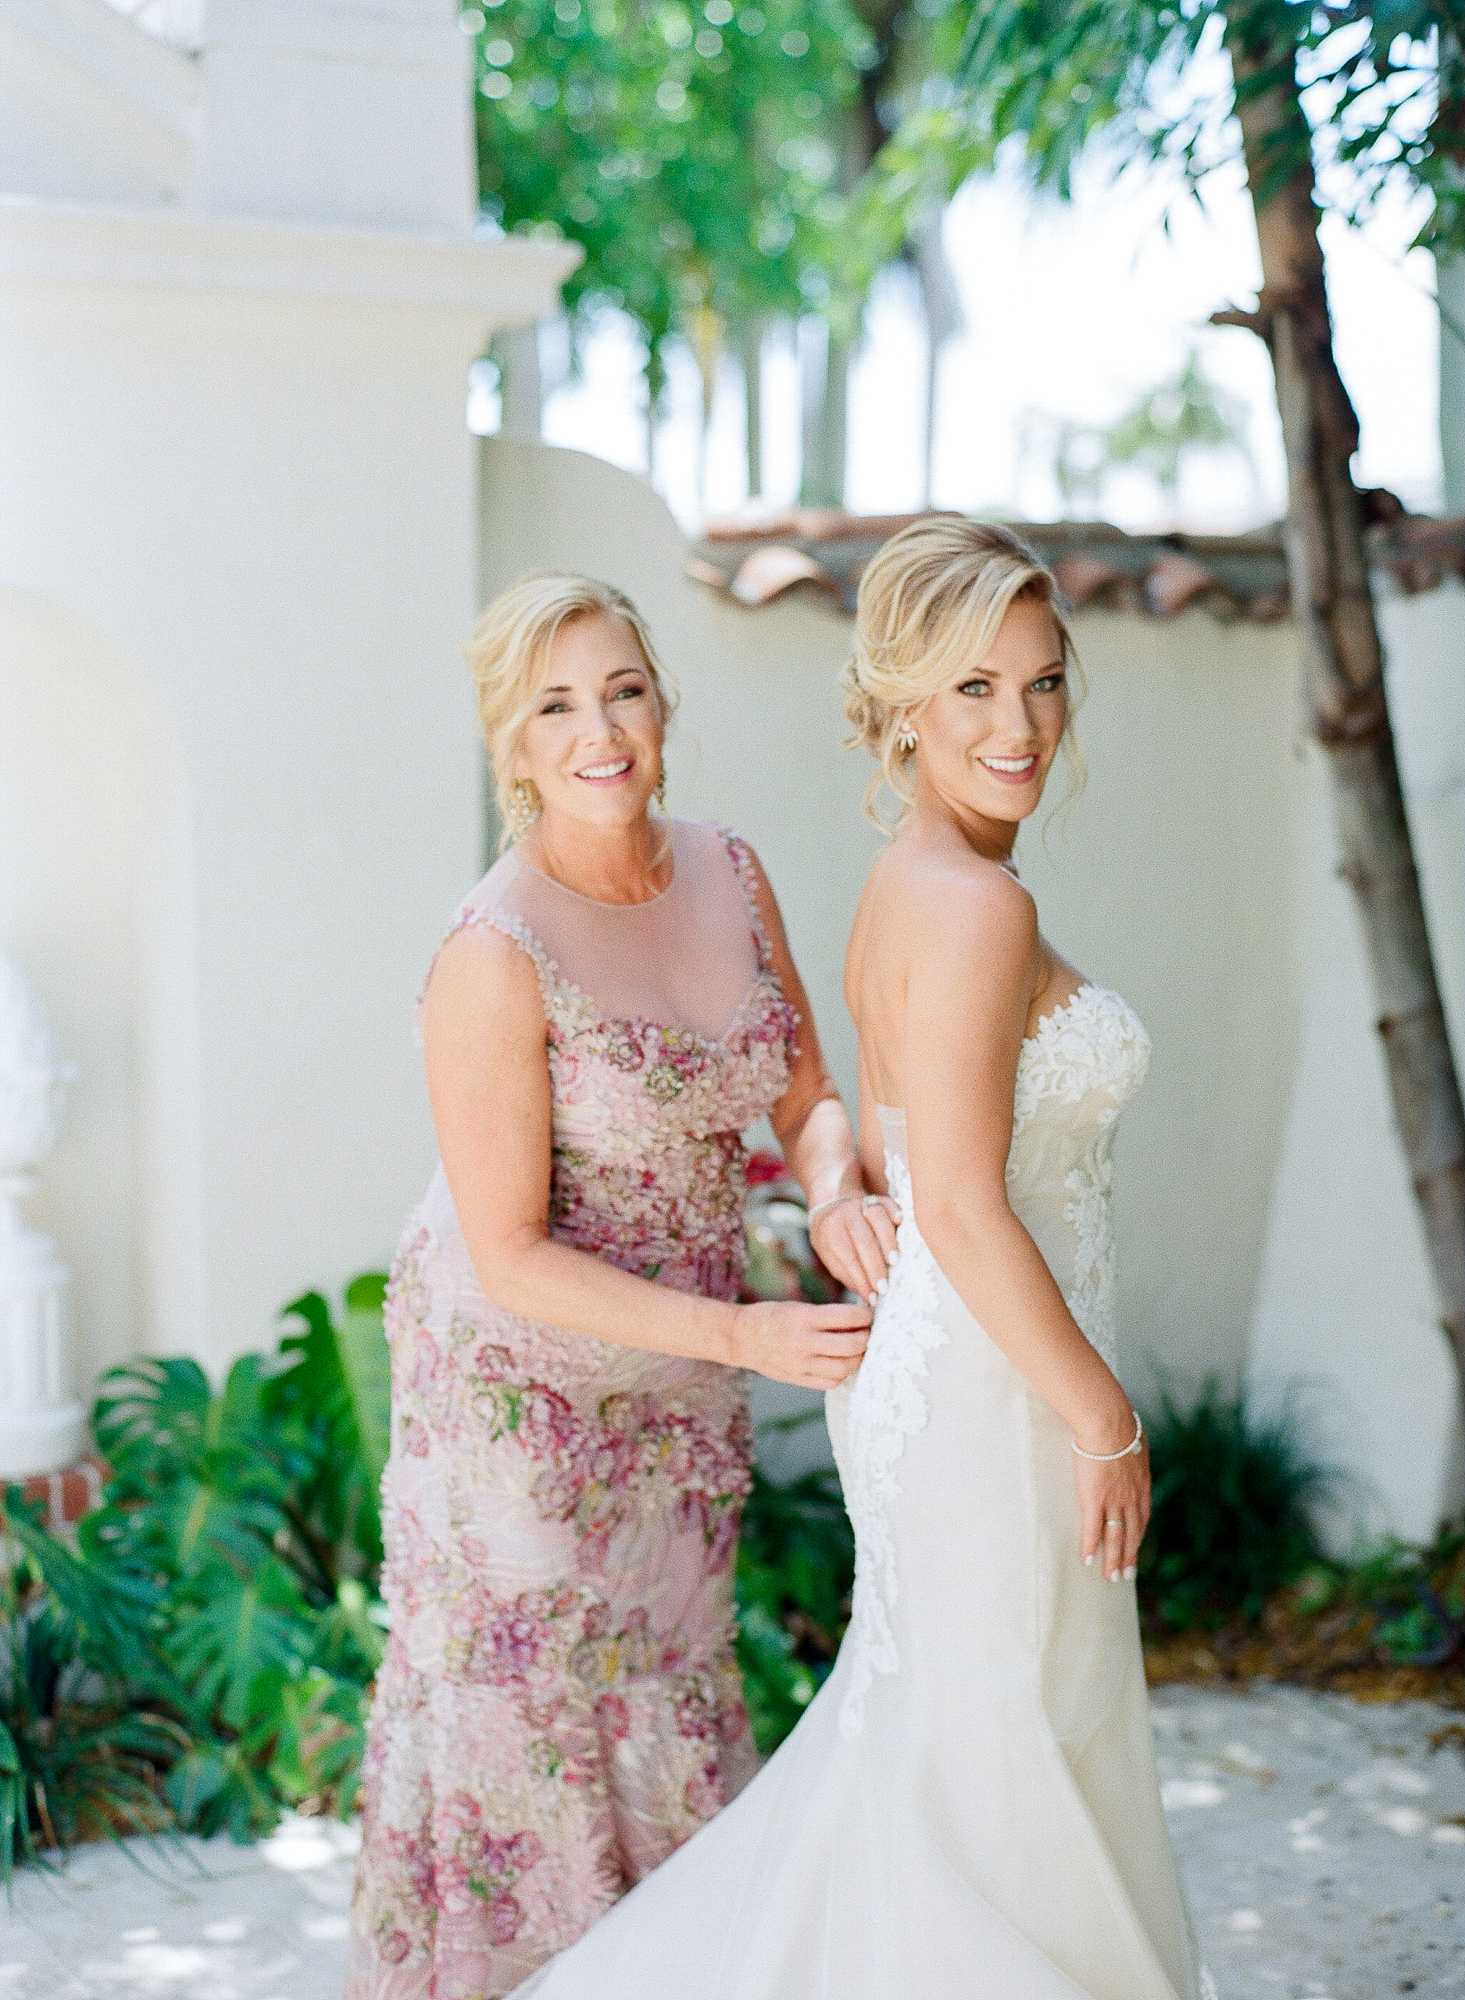 Mother of the bride buttons her daughter's gown outside while both look and smile towards the camera.